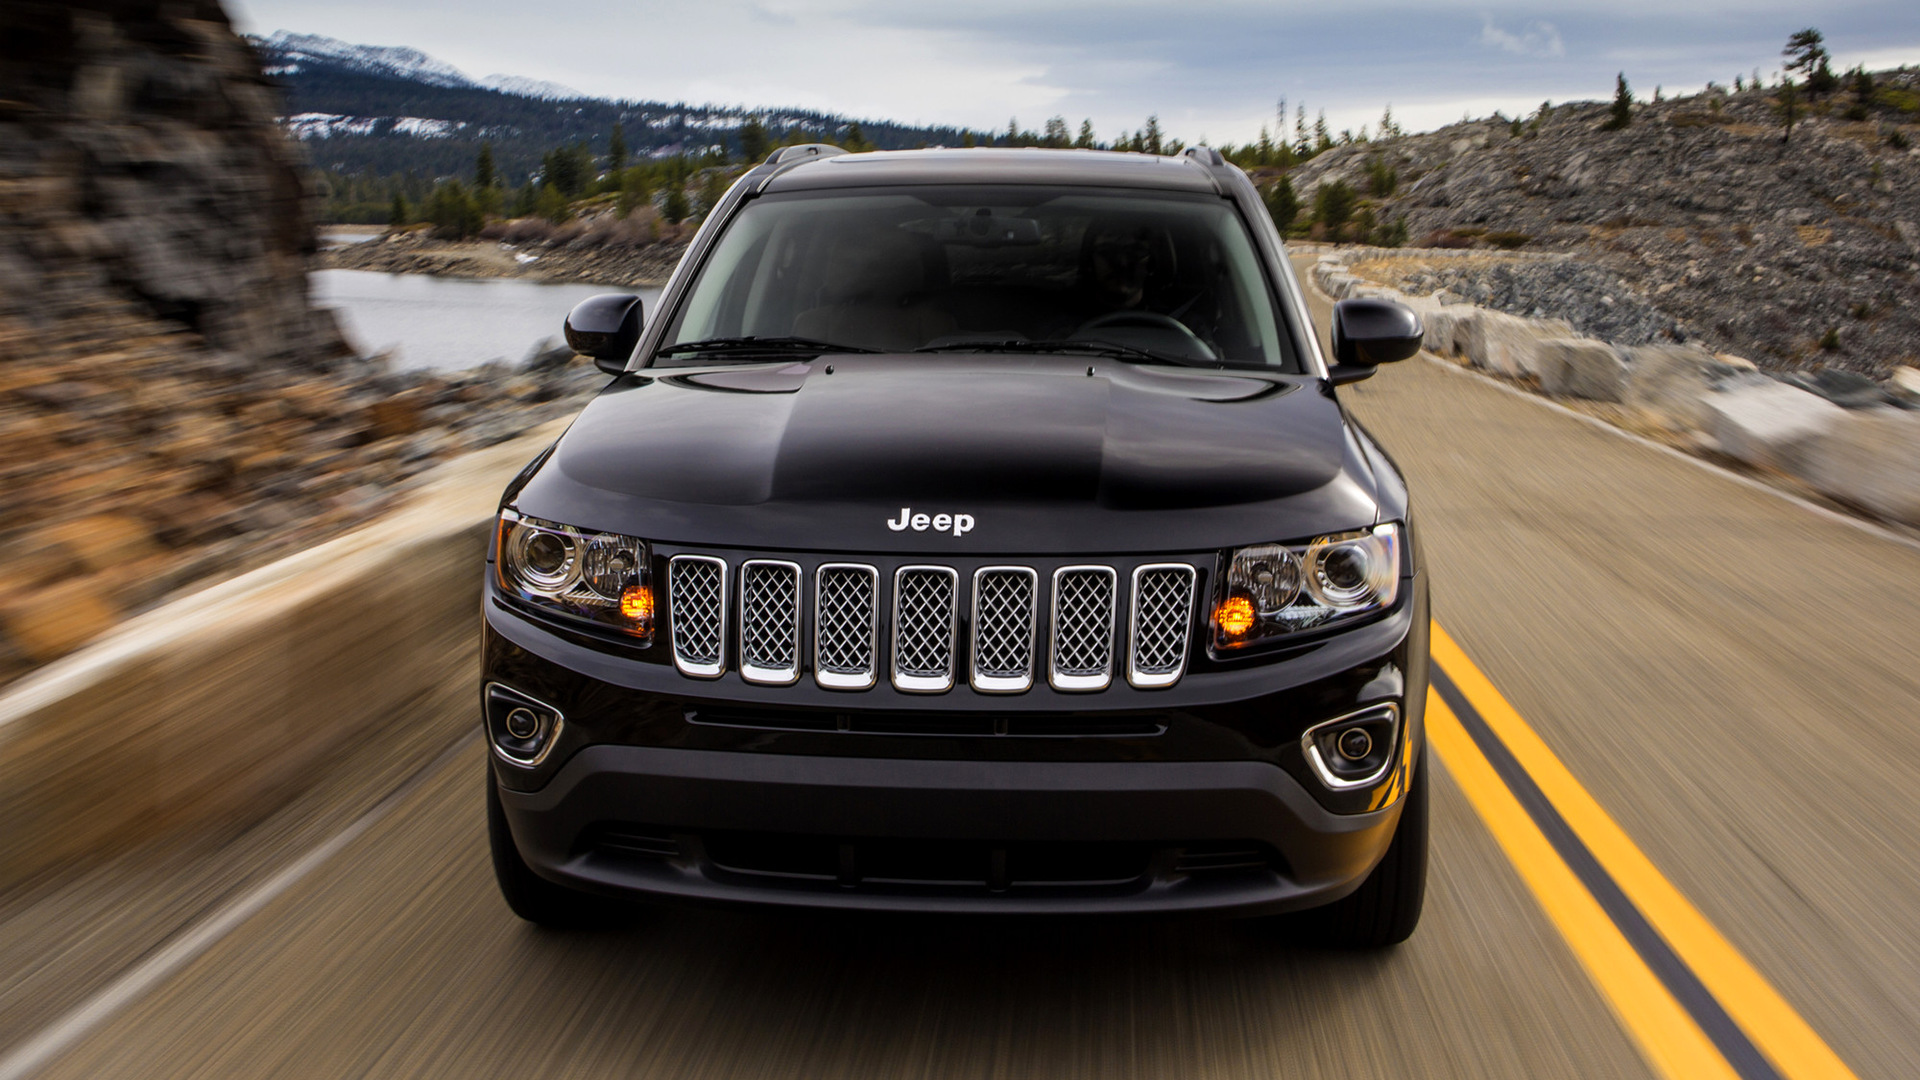 Jeep Compass (2013) Wallpapers And HD Images